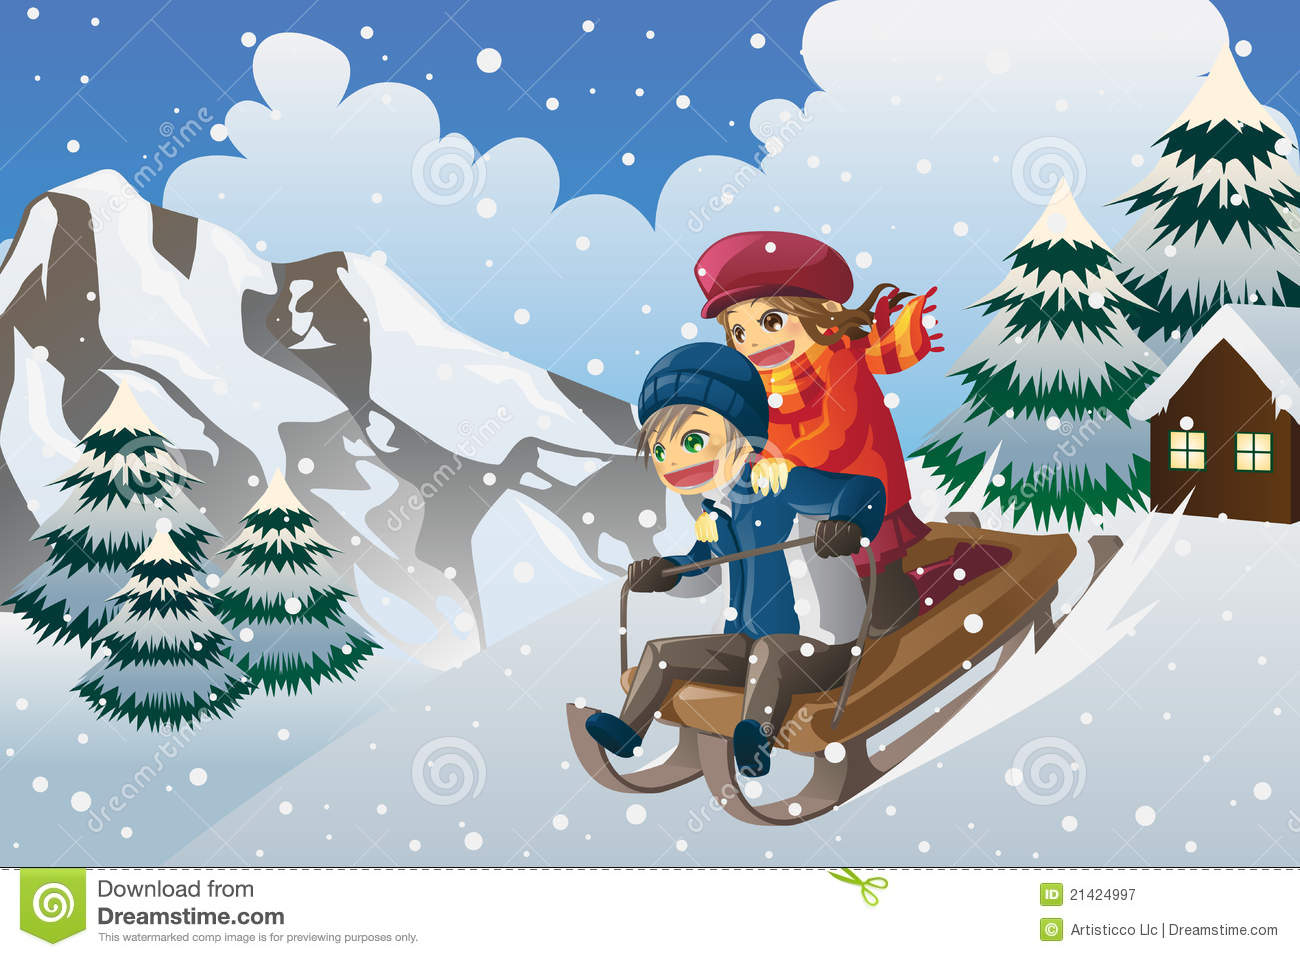 Kids Sledding In The Snow Stock Vector Illustration Of Drawing 21424997